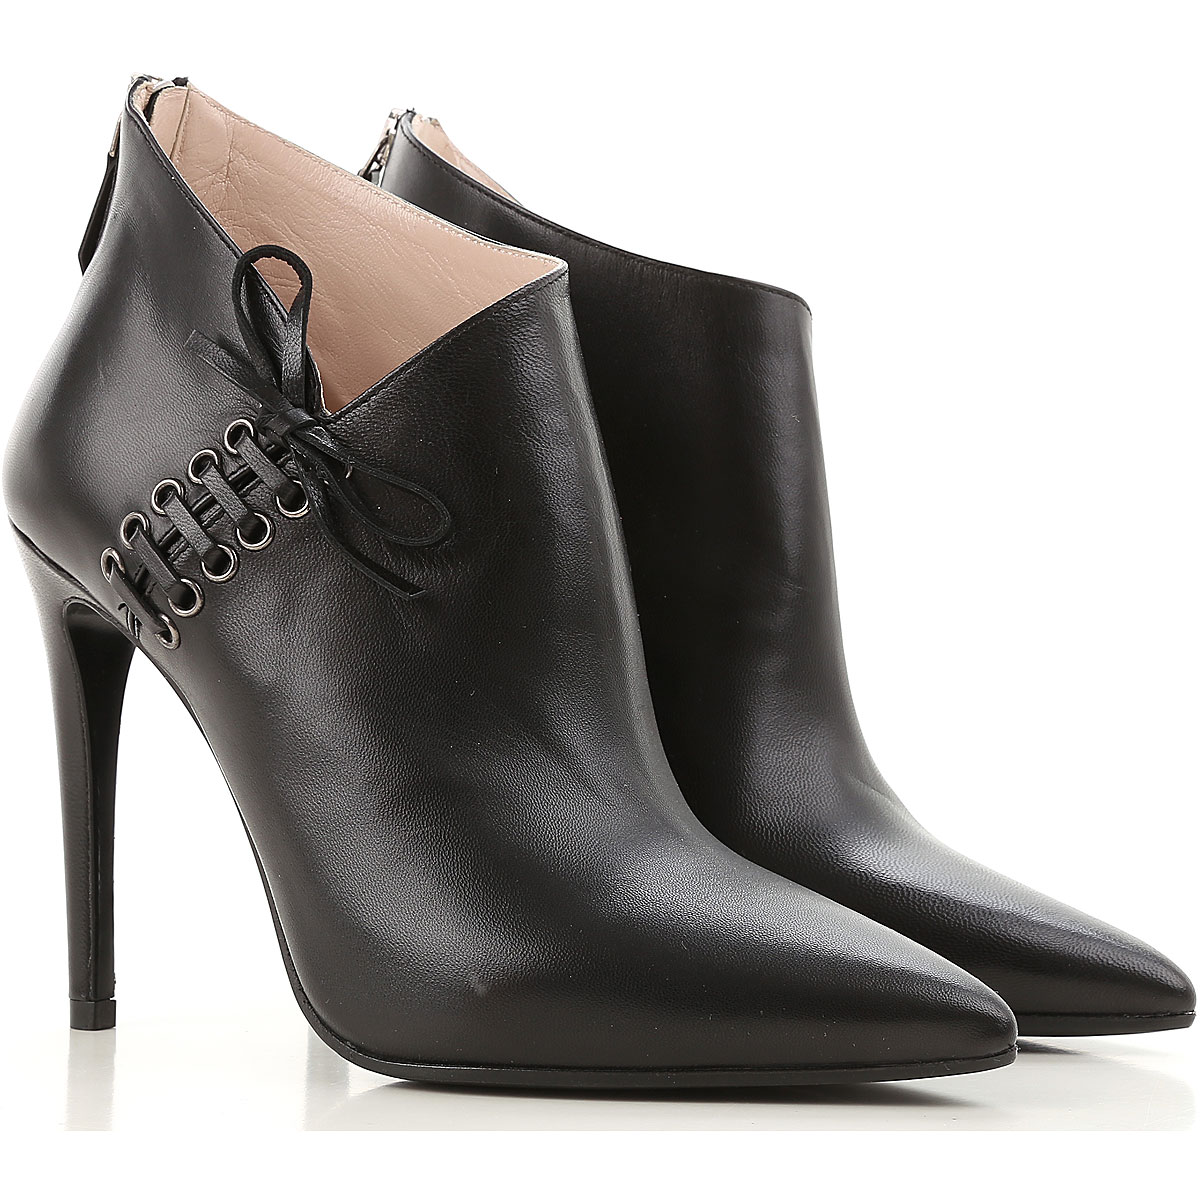 Miu Miu Boots for Women, Booties On Sale in Outlet, Black, Calfskin Leather, 2019, 5 8.5